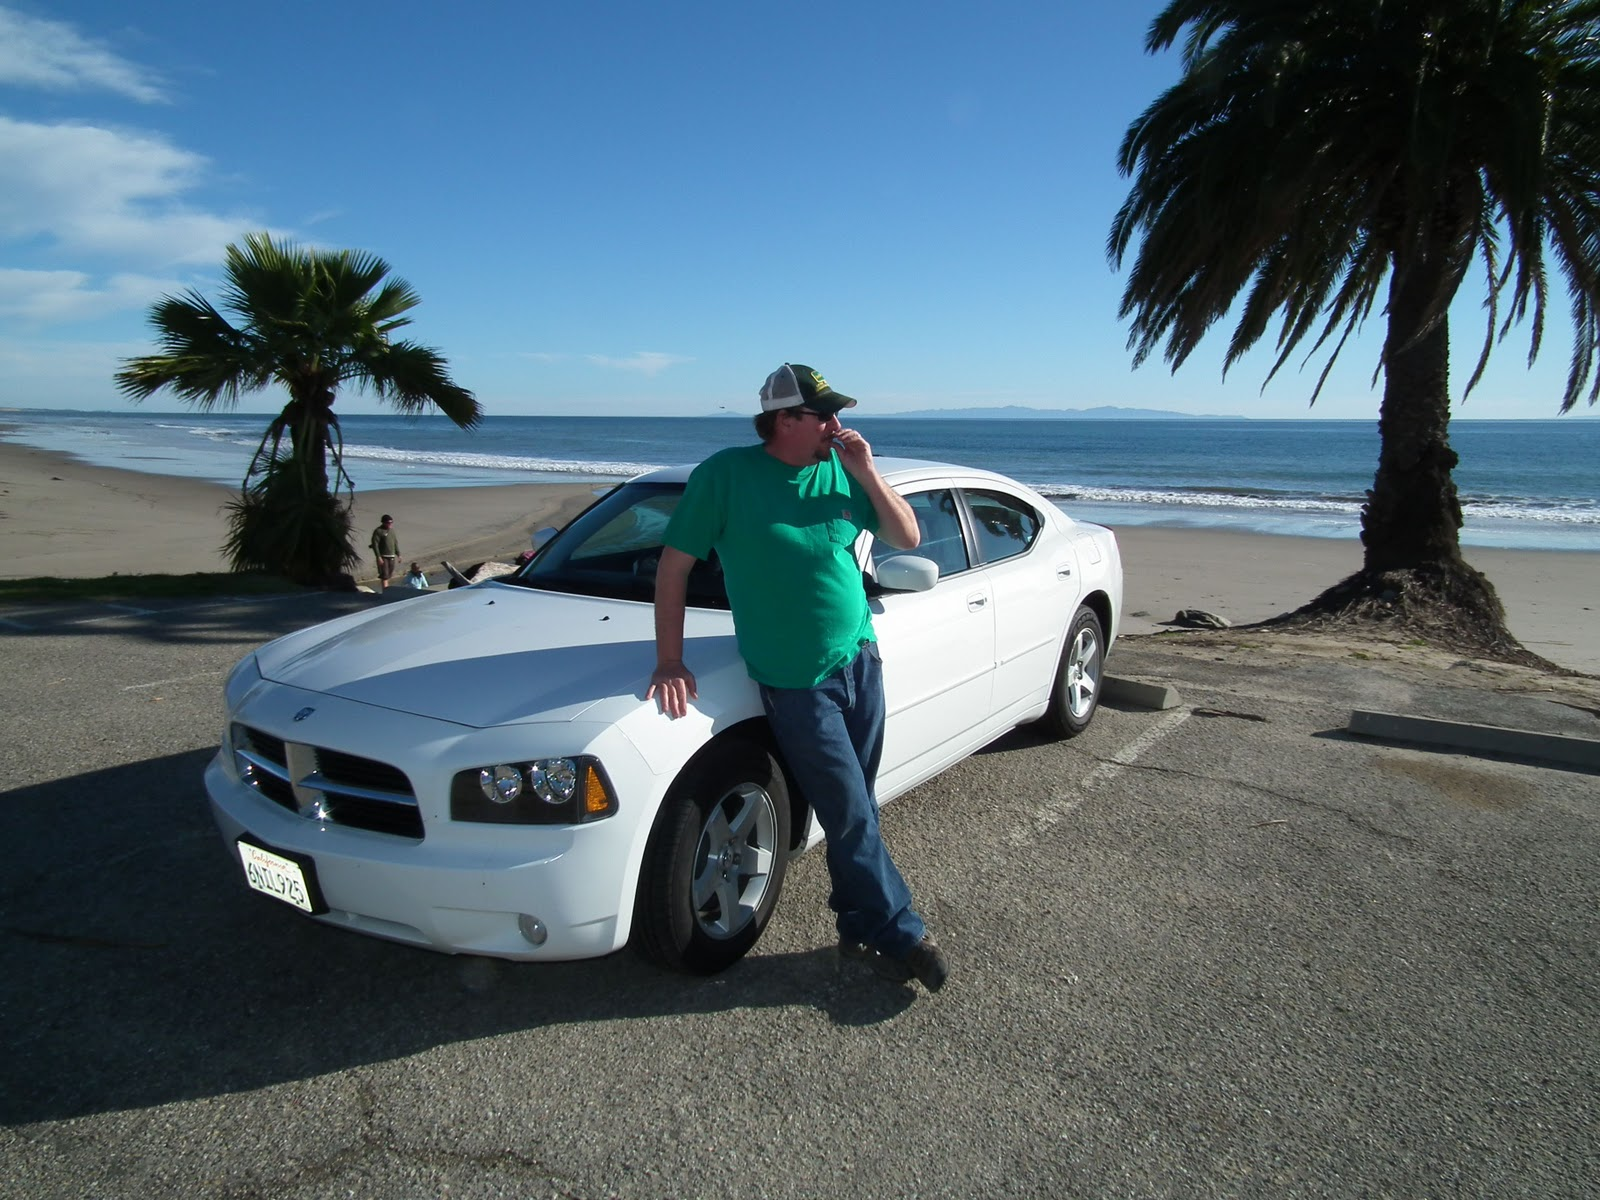 OUTDOORS NM Surf Fishing in California Eases Winter Blues